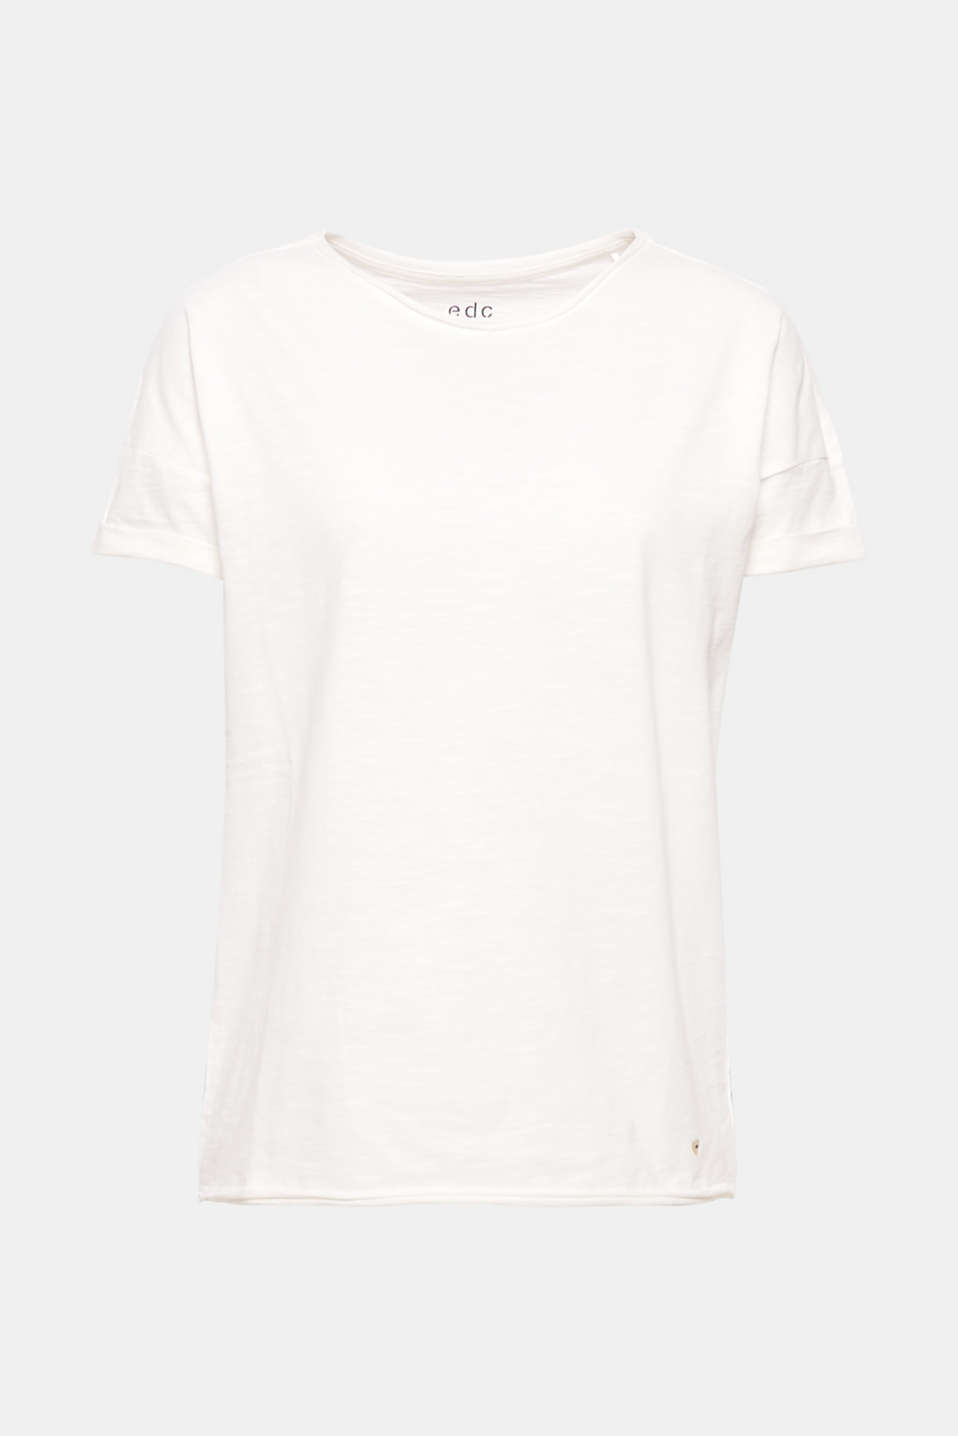 Airy, casual style all round! Fashionably melange and with casual rolled edges on the neckline and hem, this cotton T-shirt is a super-soft and versatile summer piece.